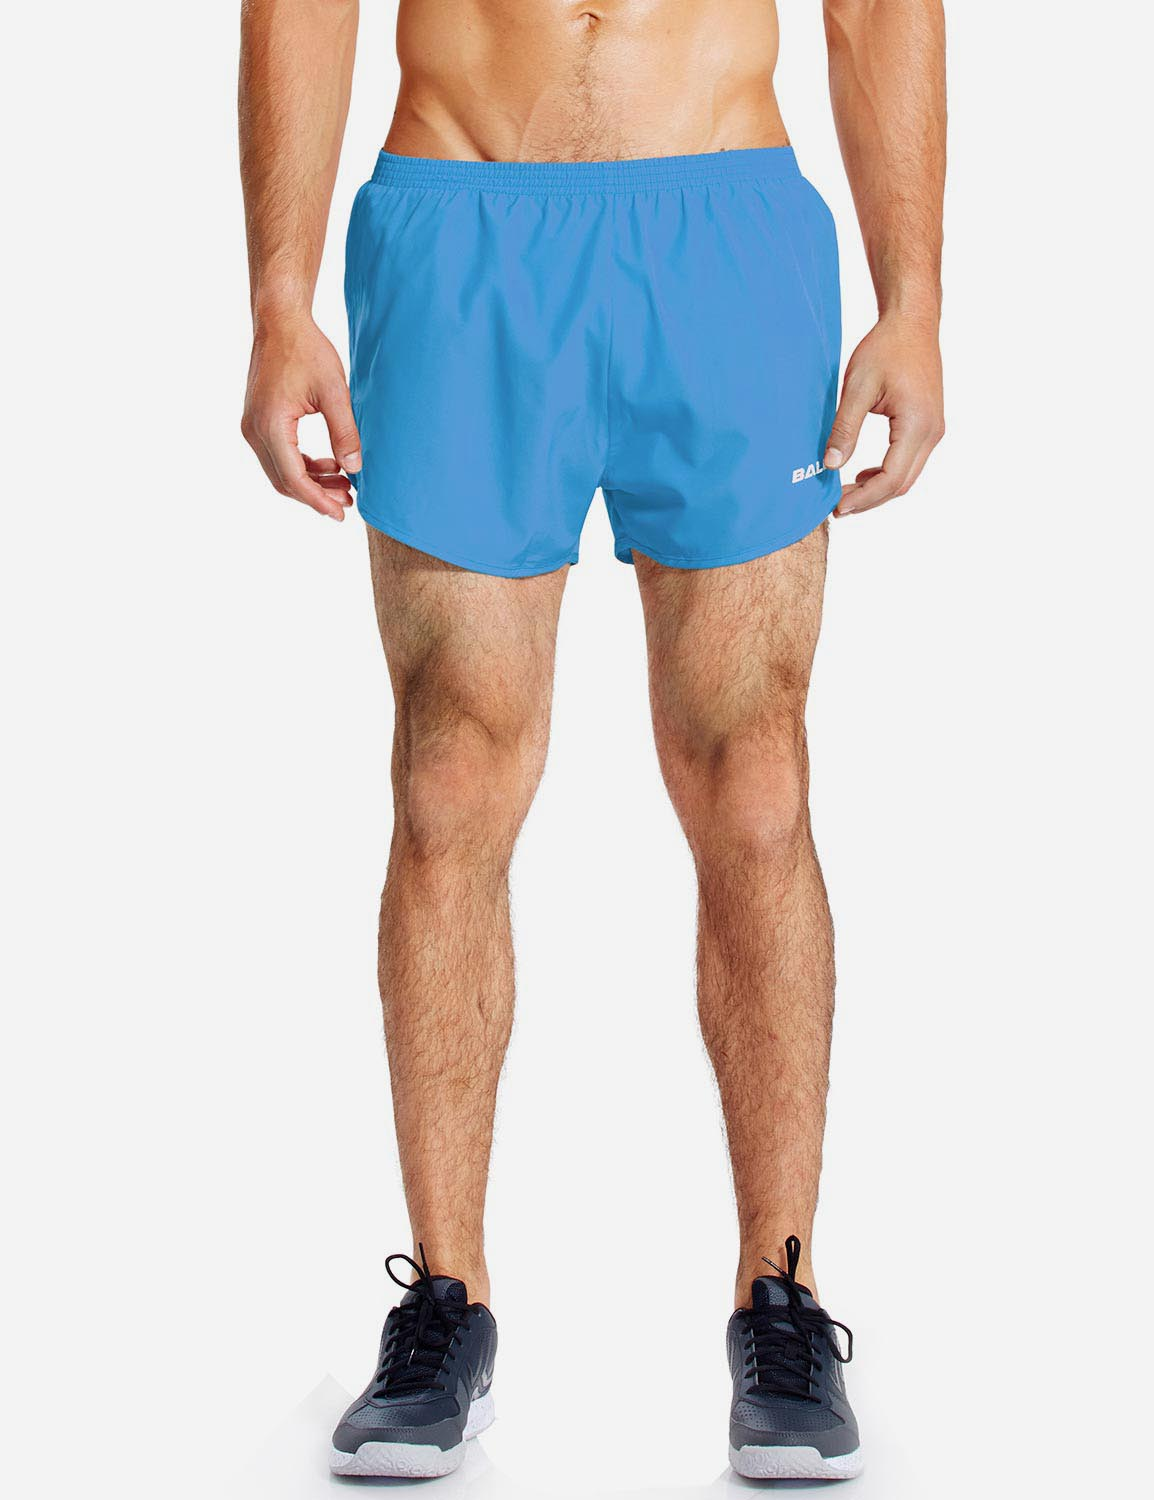 Baleaf Mens 3'' Split-Leg Basic Running Shorts light blue front